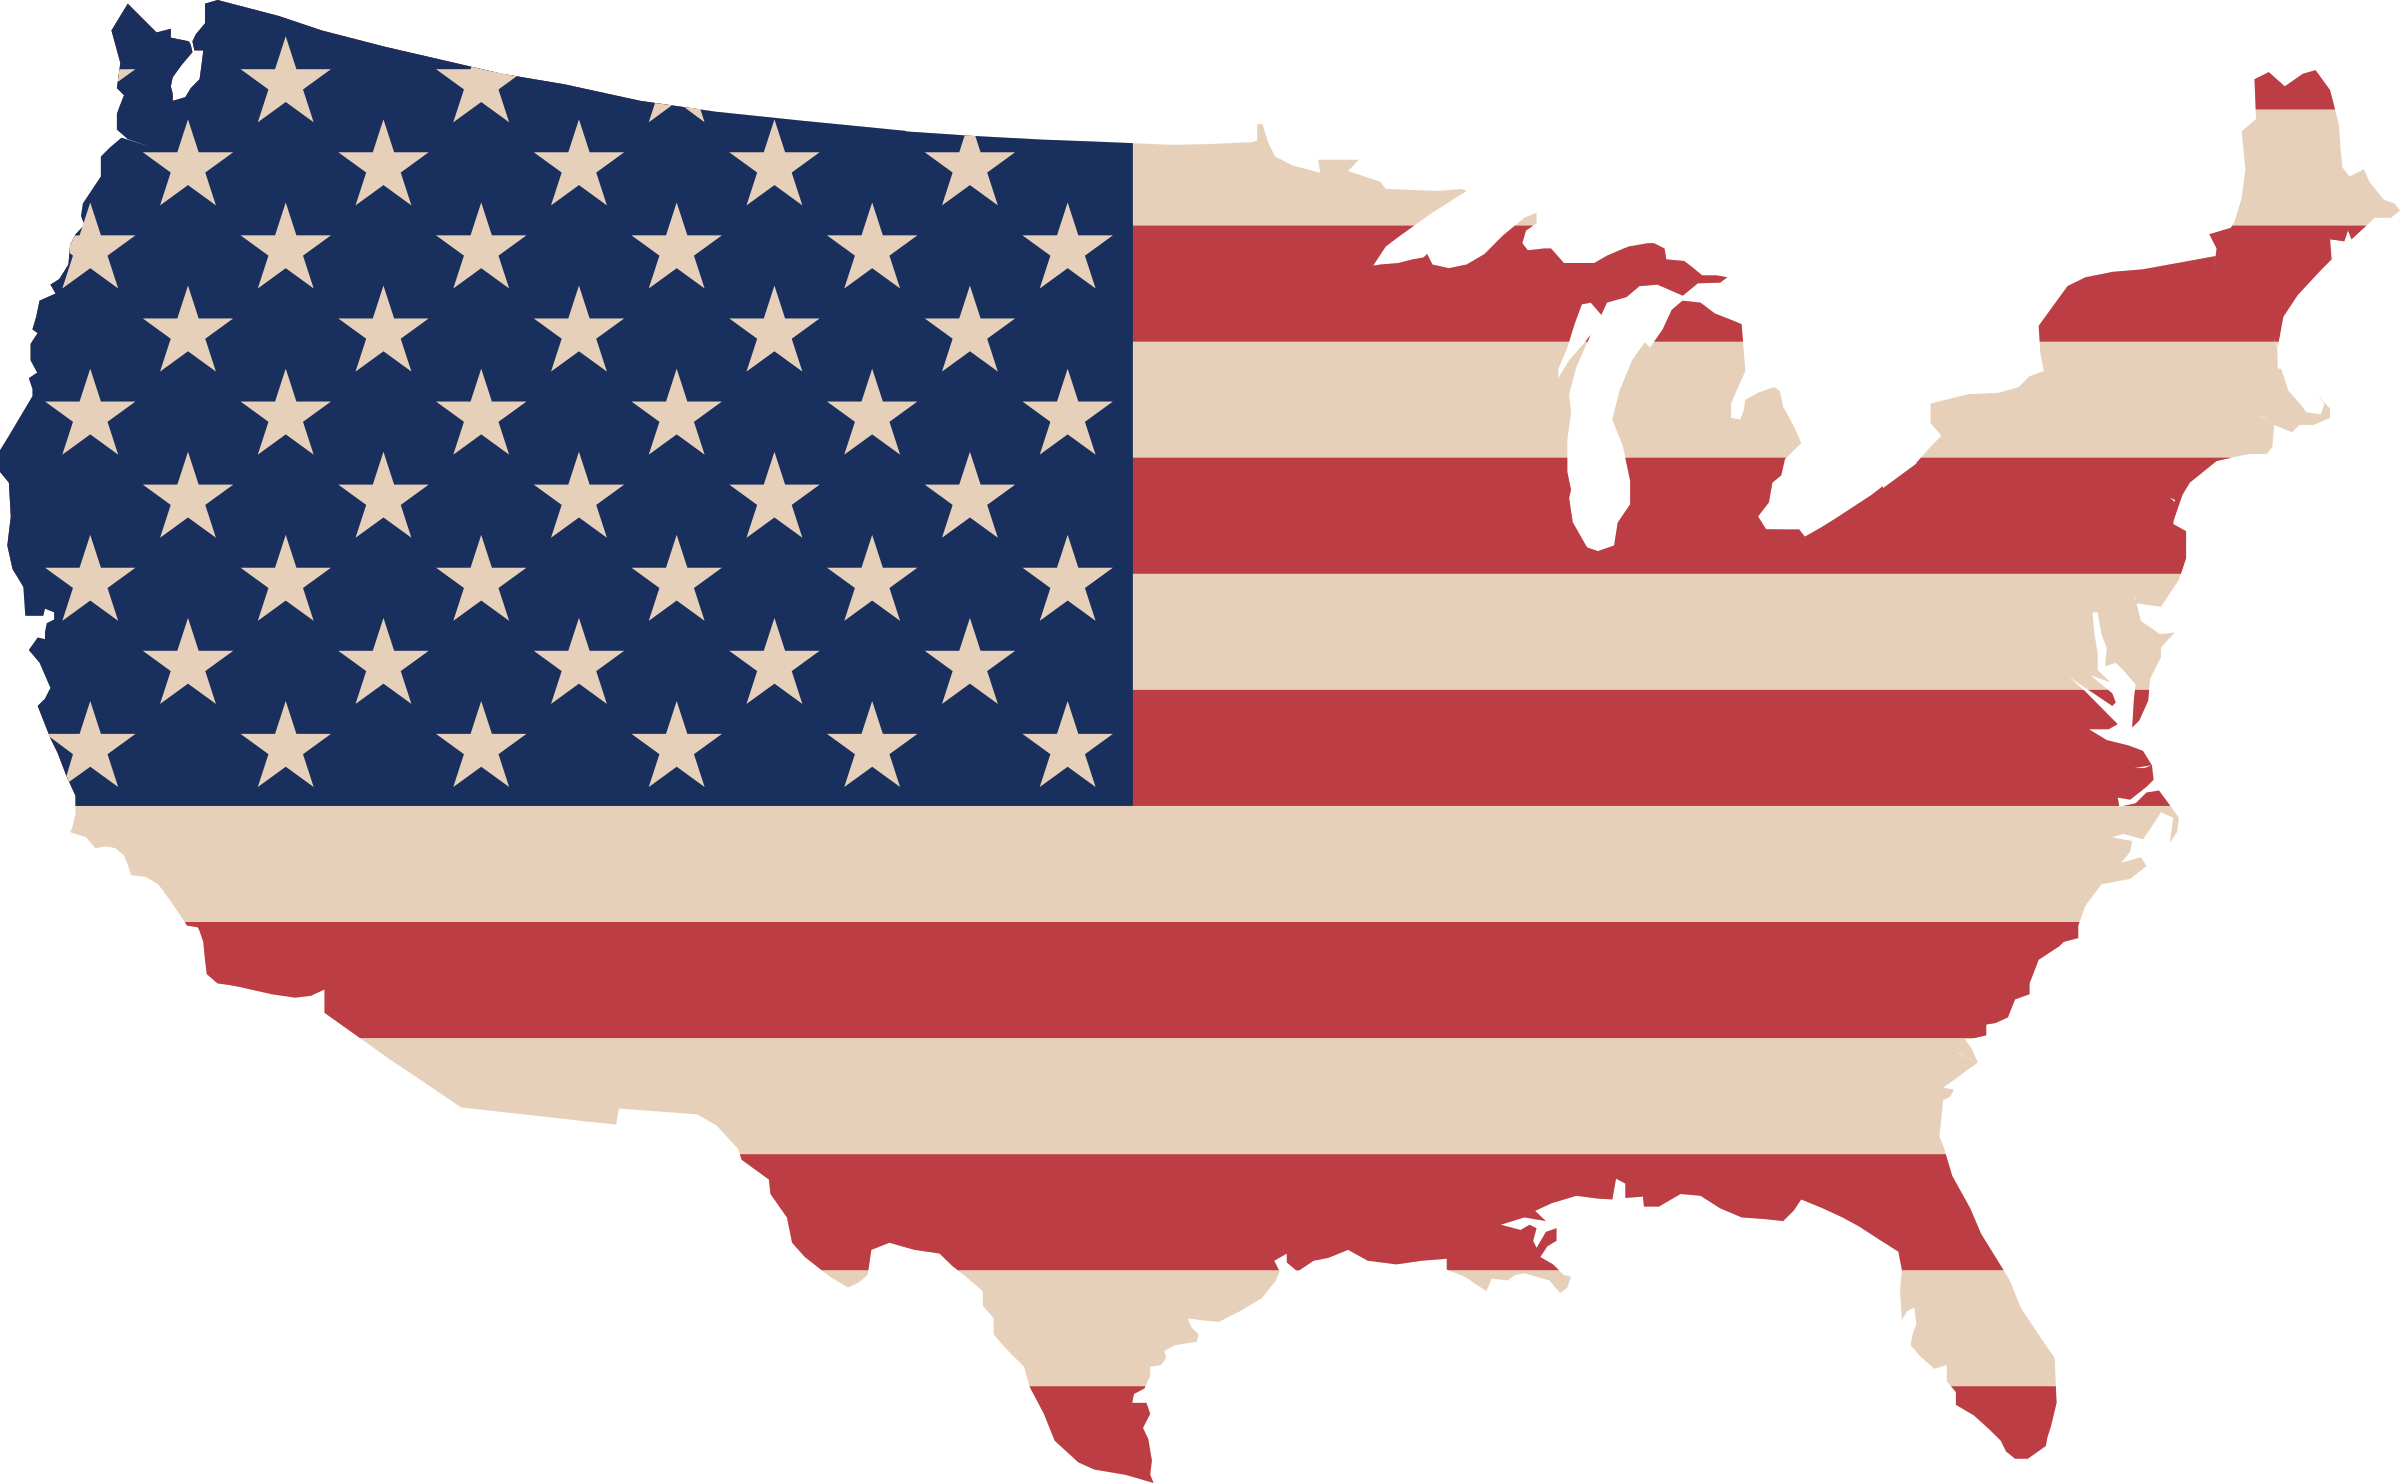 USA map and flag by cyberscooty